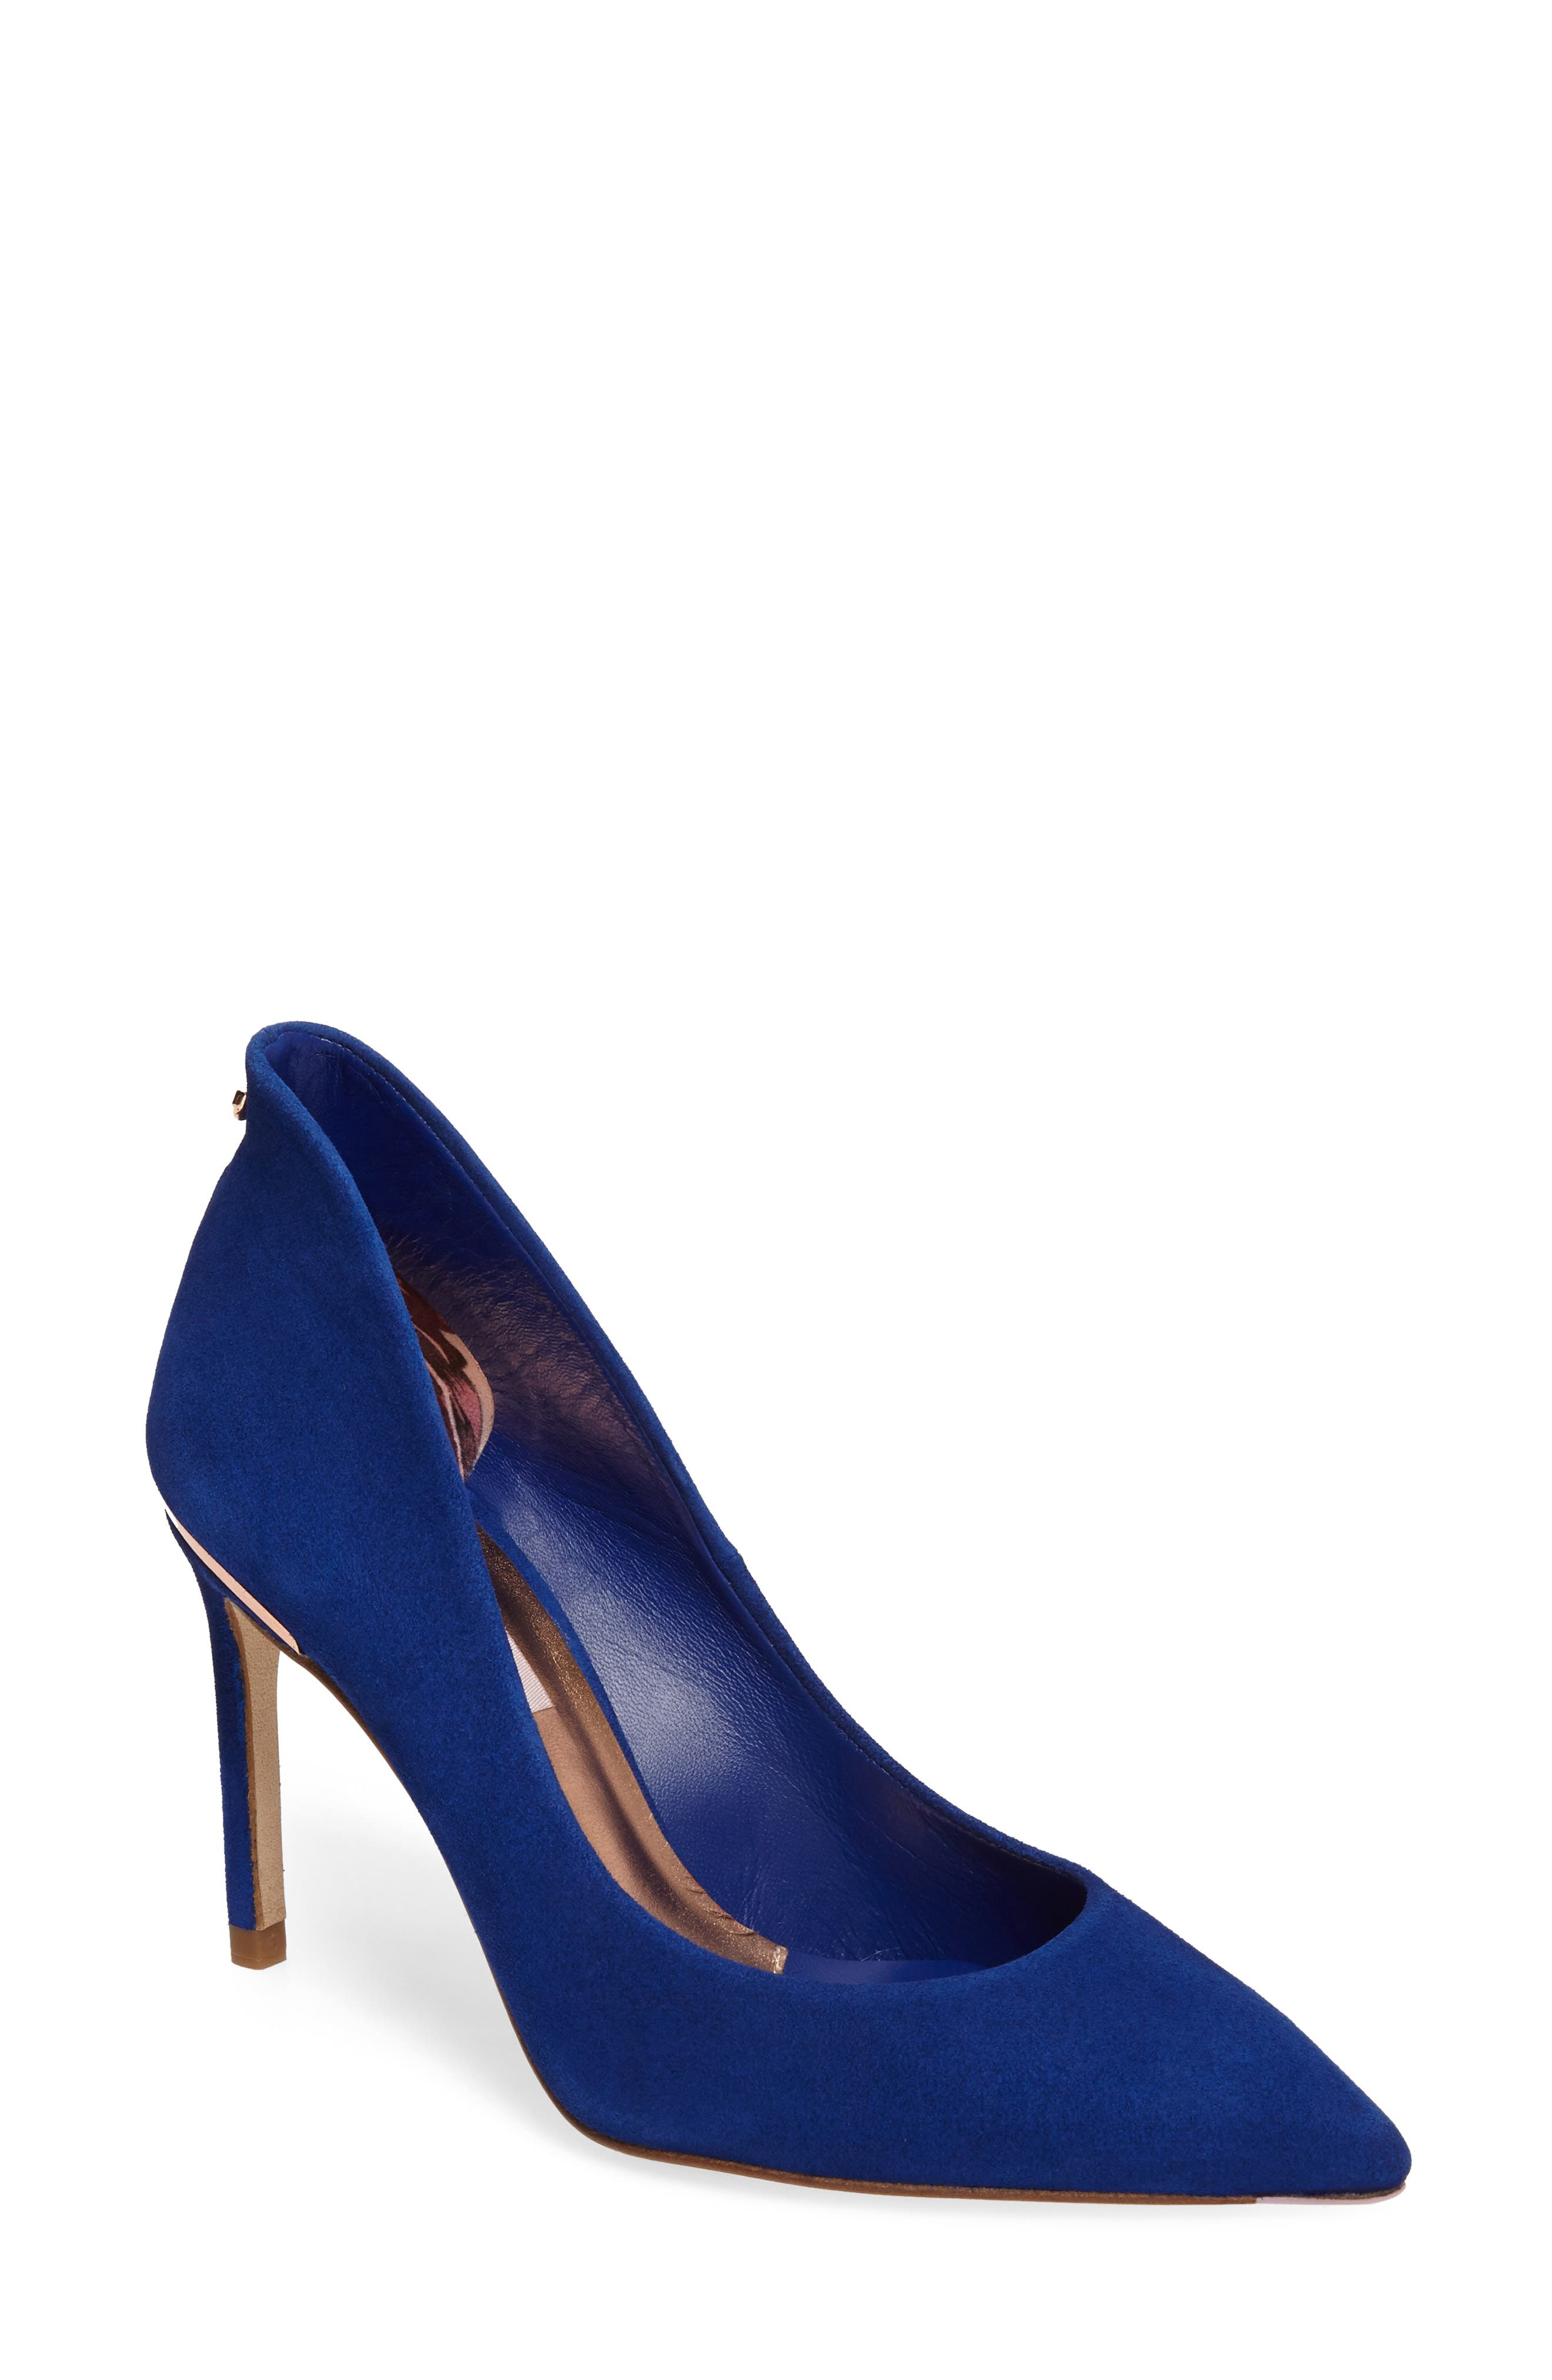 Alternate Image 1 Selected - Ted Baker London Savio Pointy Toe Pump (Women)